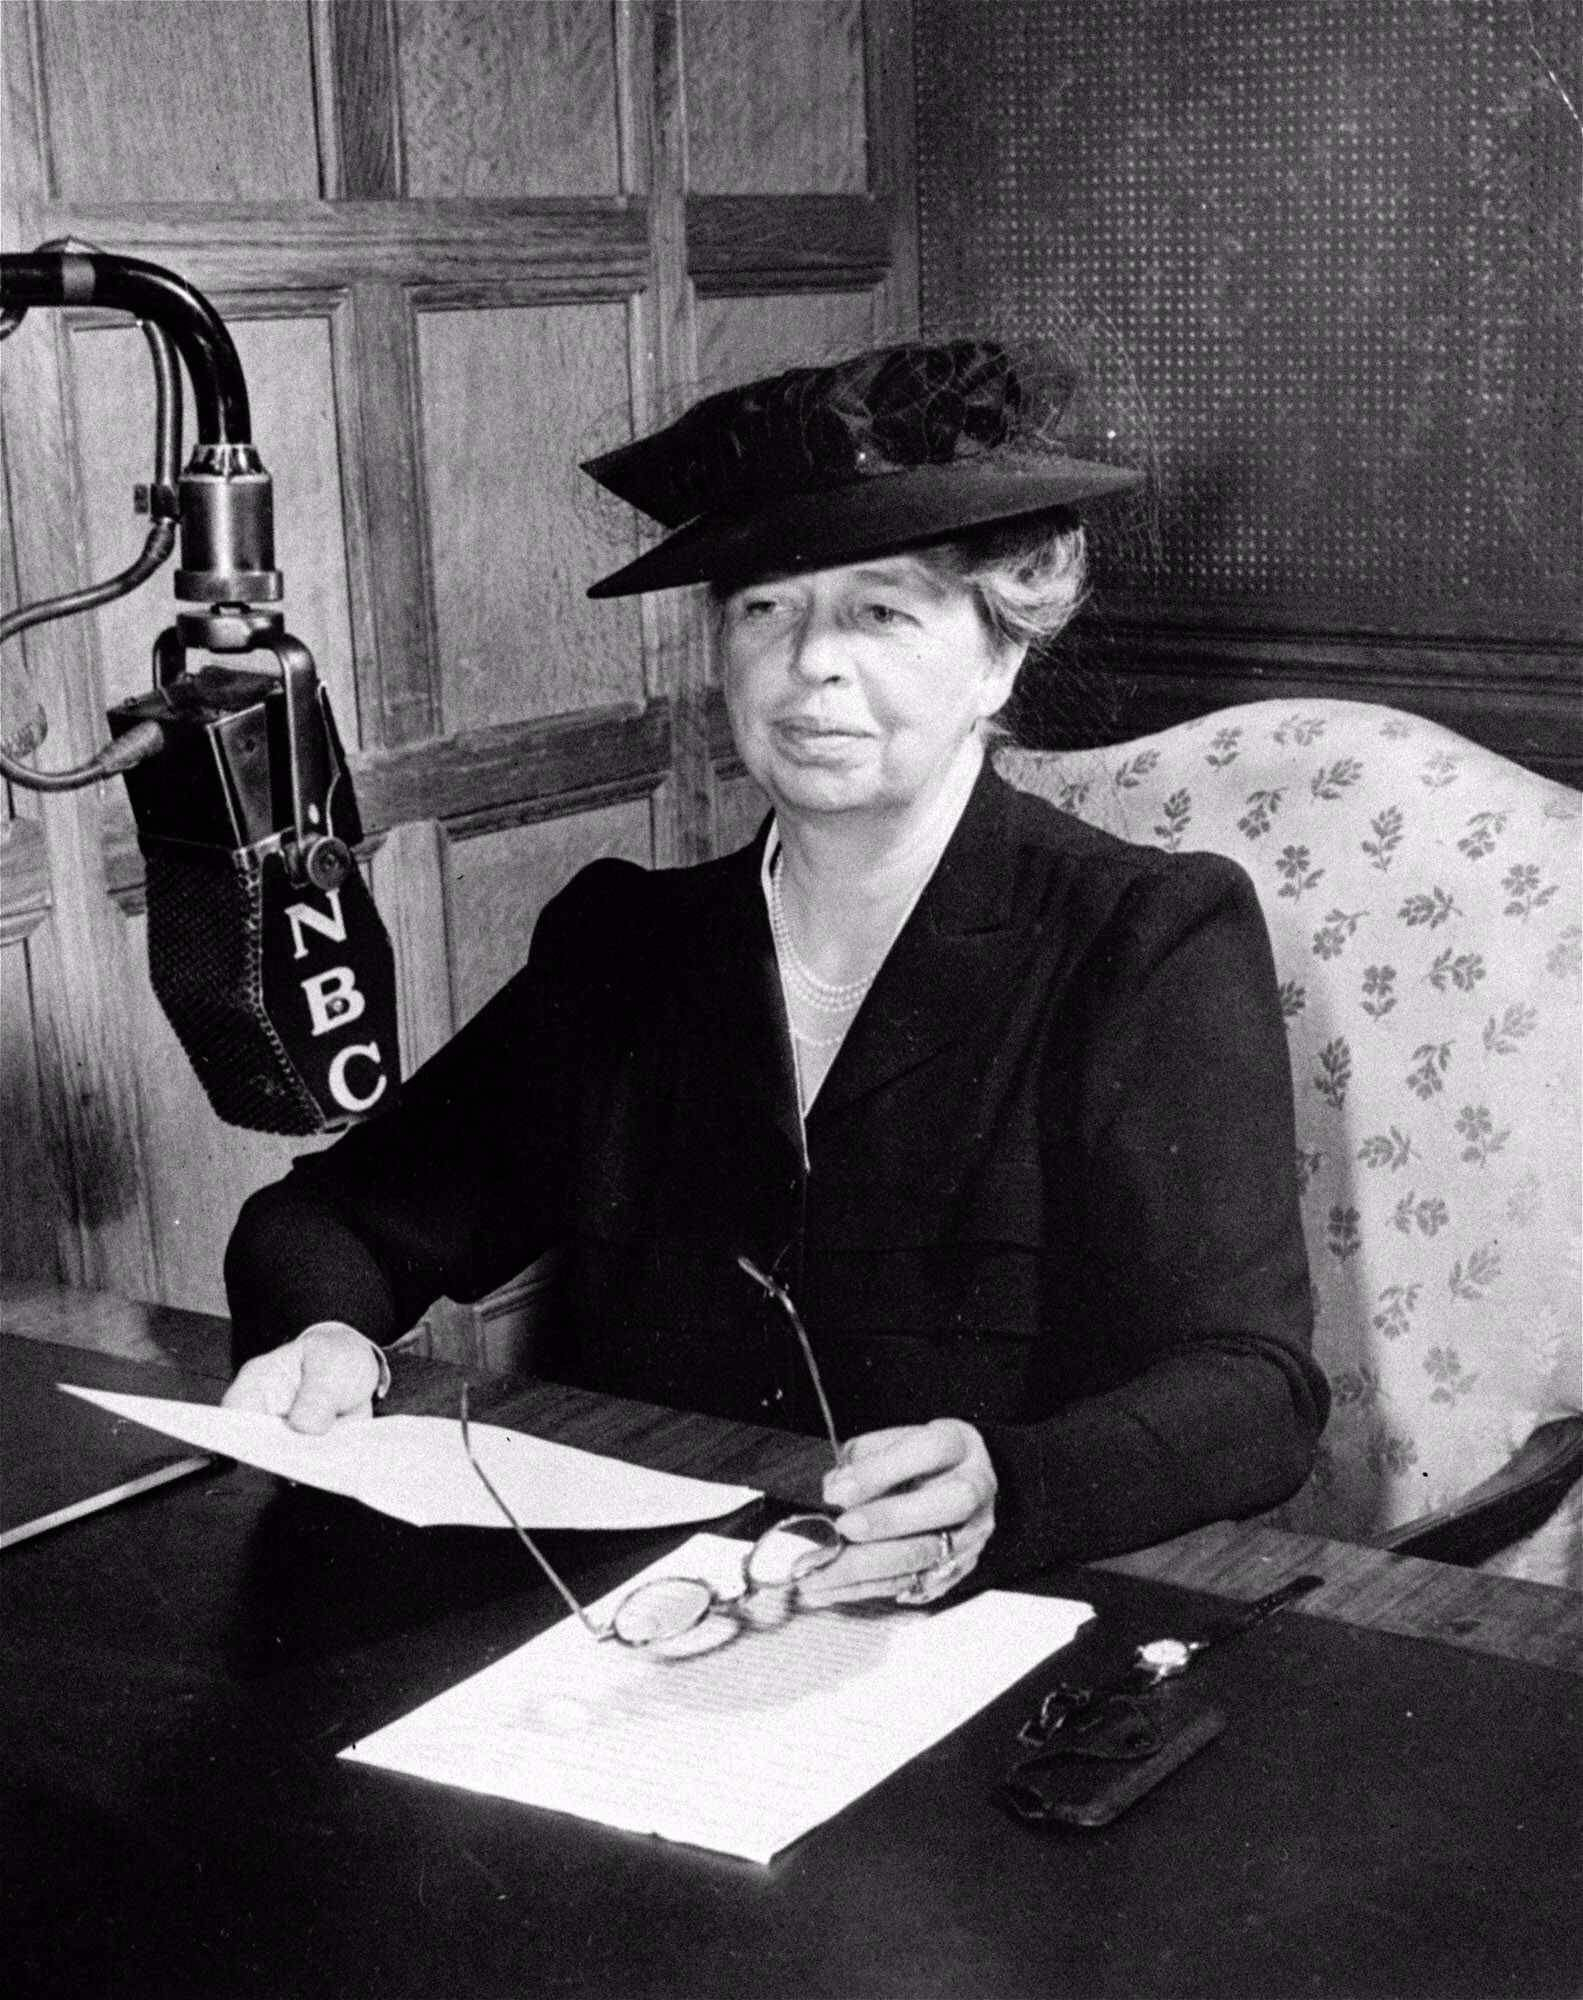 """Prominent women in history. Anna Eleanor Roosevelt (October 11, 1884 – November 7, 1962). She was an American politician and the longest-serving First Lady of the United States, holding the post from March 1933 to April 1945 during her husband President Franklin D. Roosevelt's four terms in office. President Harry S. Truman later called her the """"First Lady of the World"""" in tribute to her human rights achievements."""